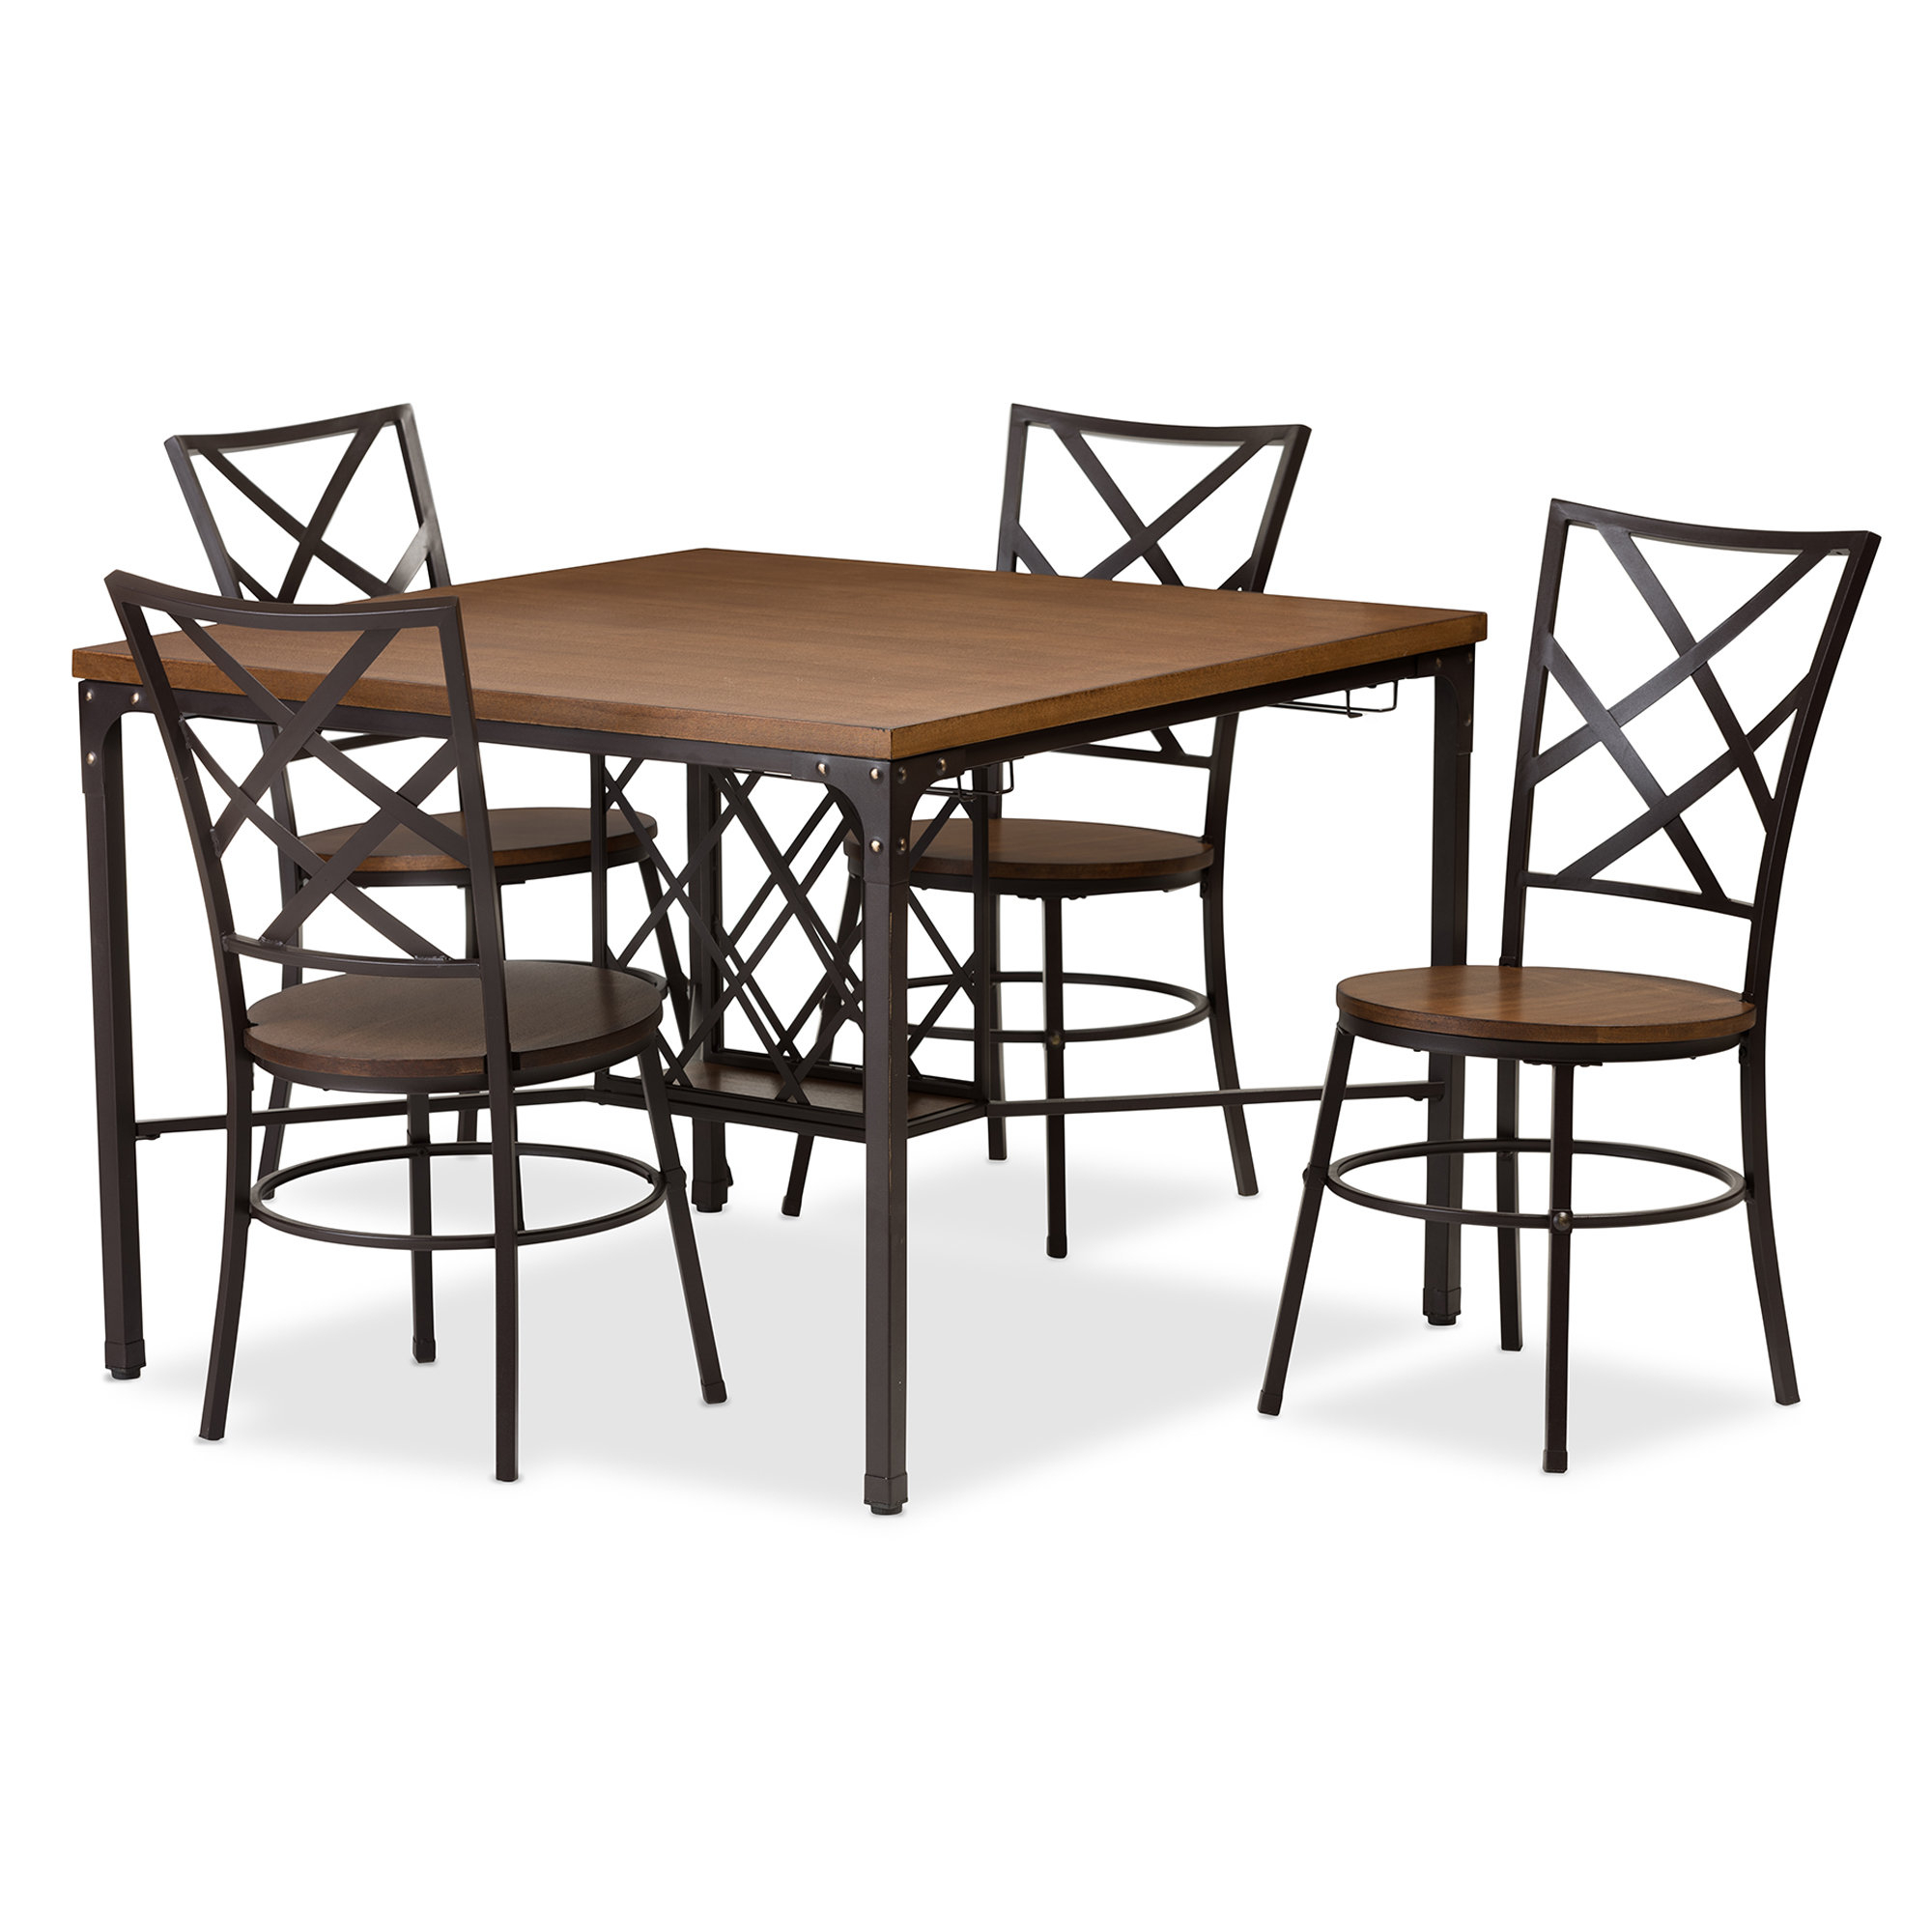 Calla 5 Piece Dining Set Regarding Latest Stouferberg 5 Piece Dining Sets (Gallery 15 of 20)